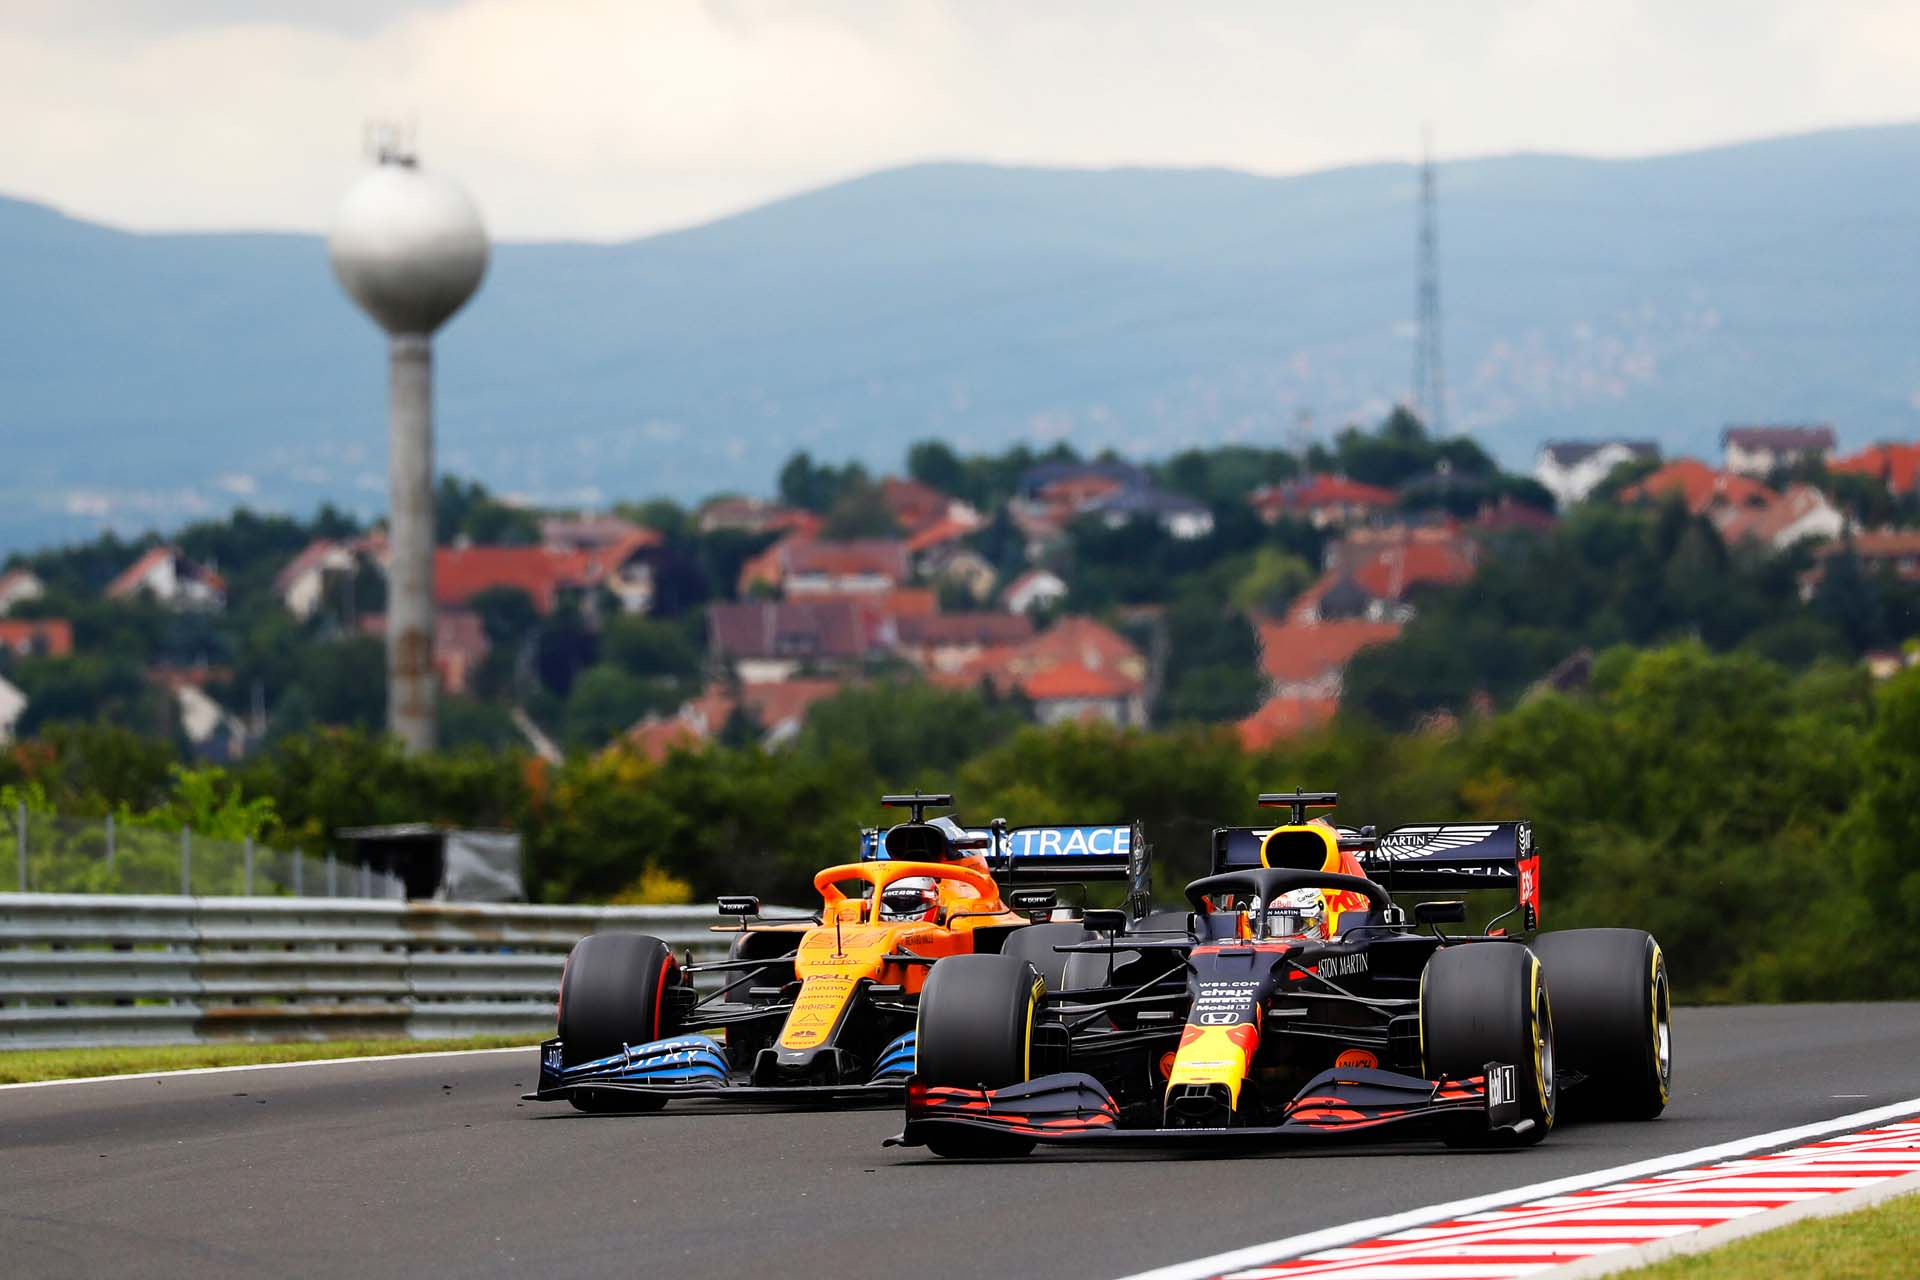 F1 Grand Prix of Hungary - Final Practice